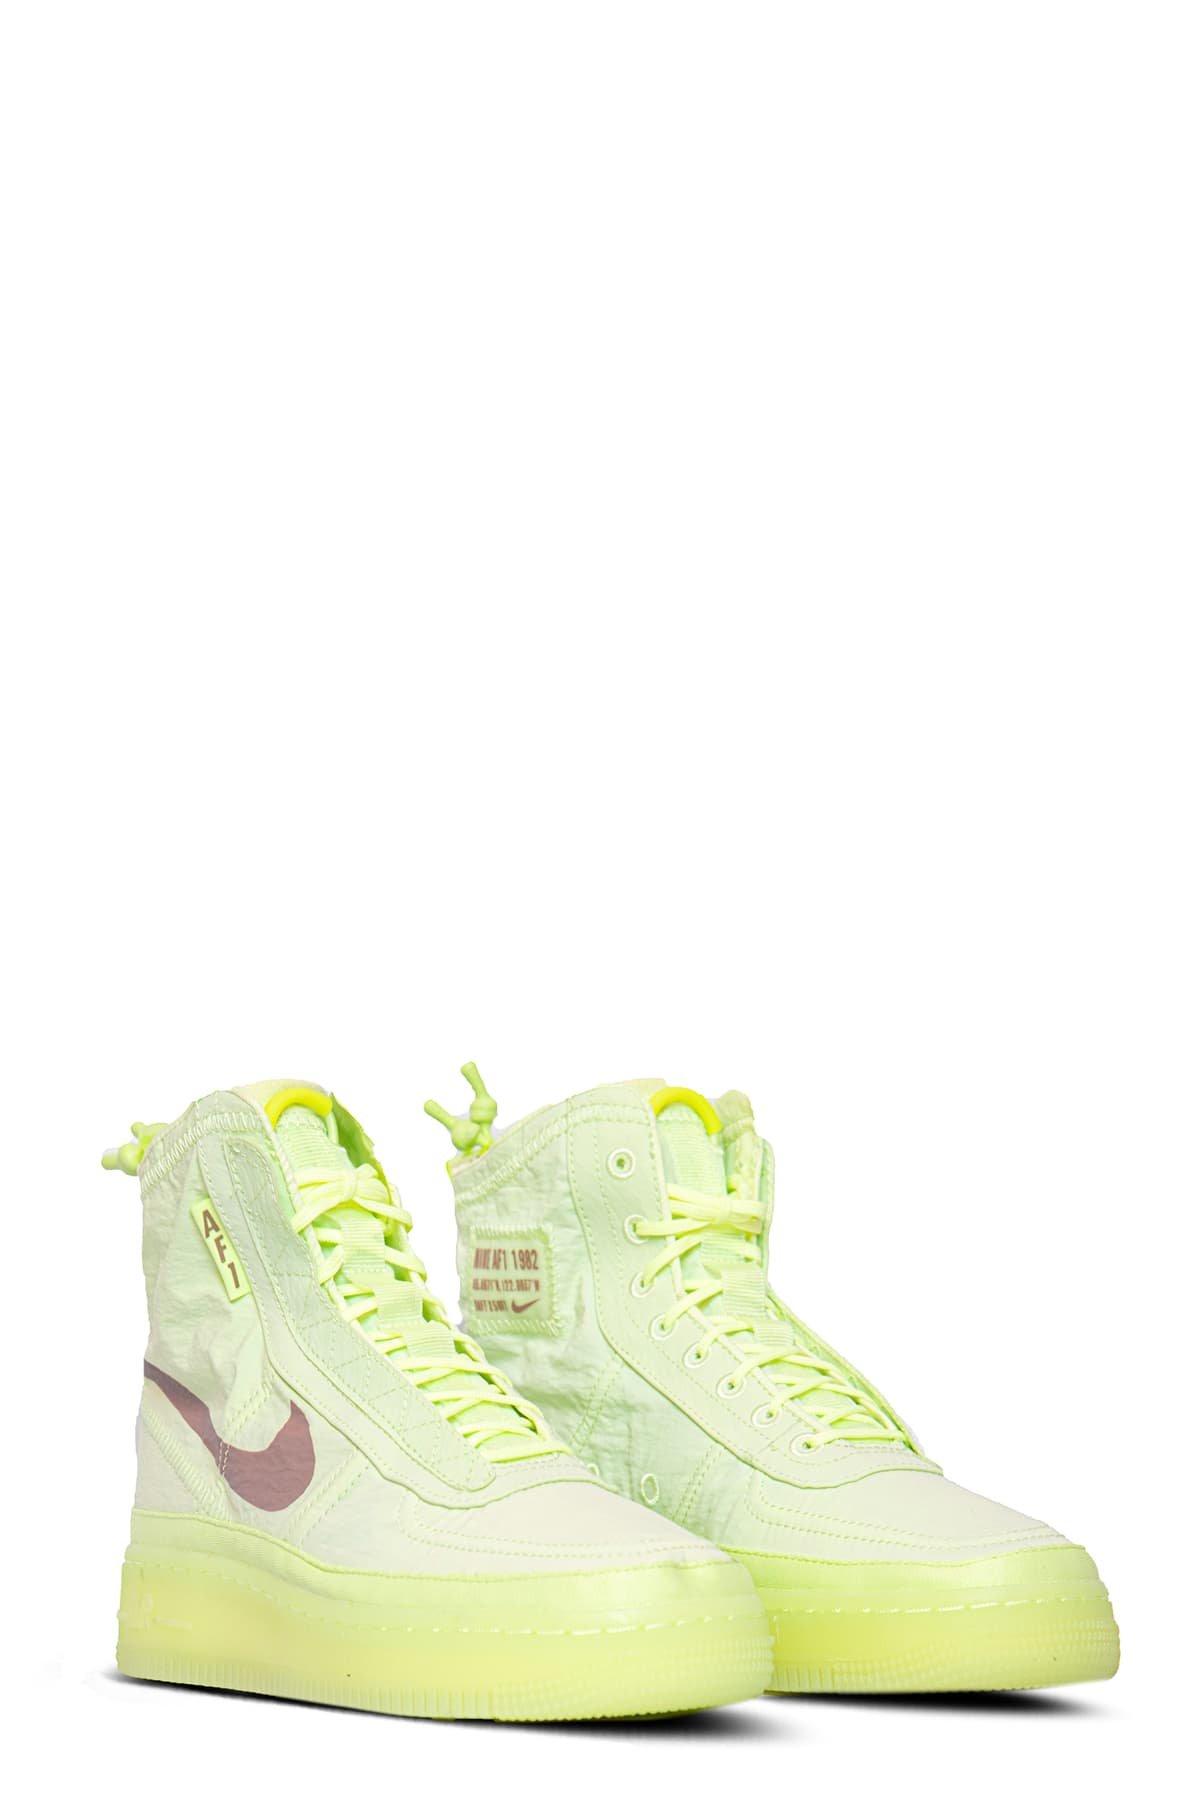 nike air force 1 verde fluo